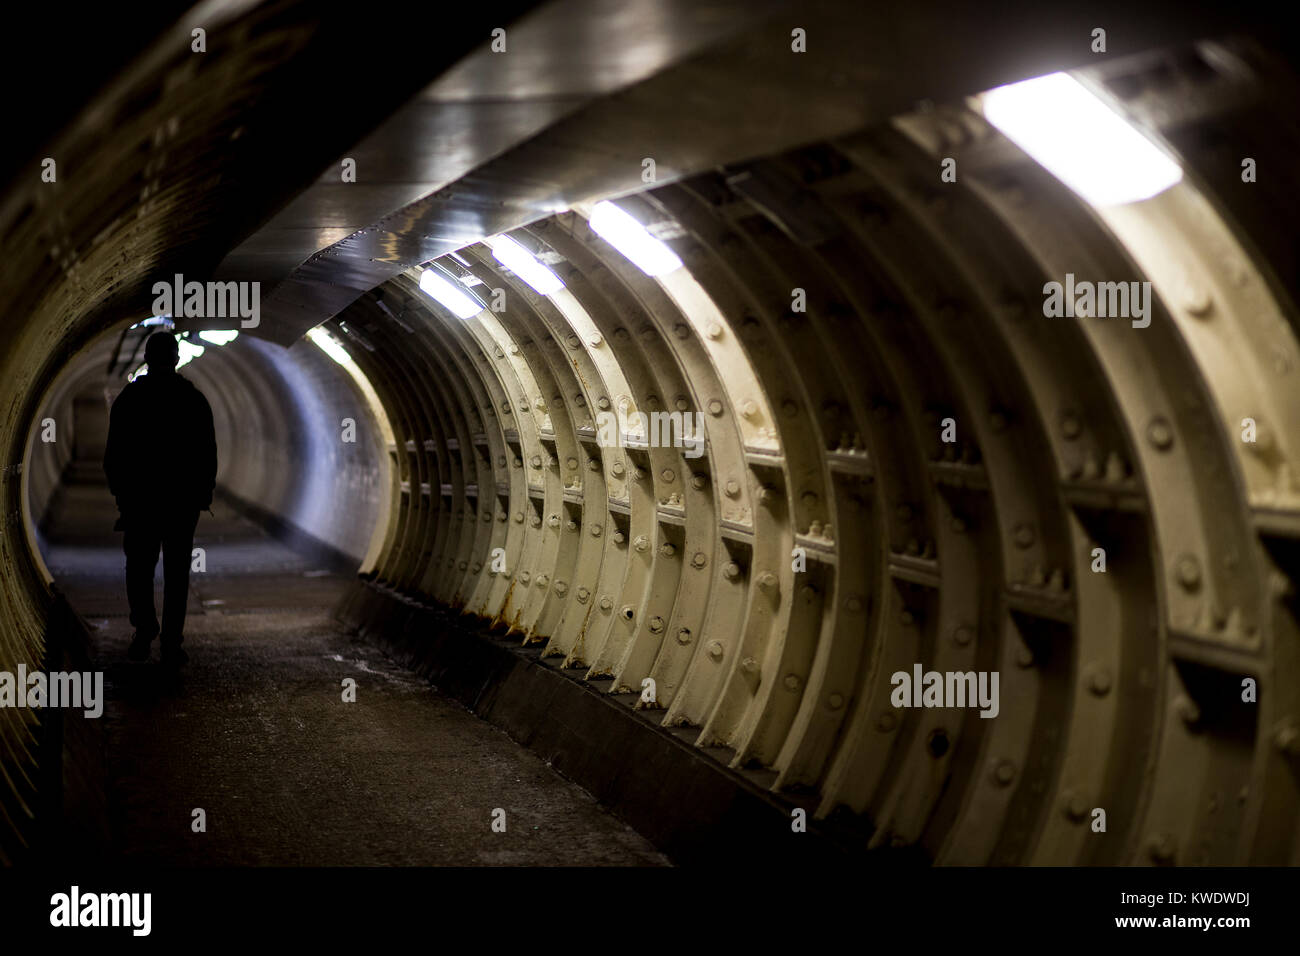 A shadowy figue walks in the Greenwich Foot Tunnel, Greenwich, London - Stock Image